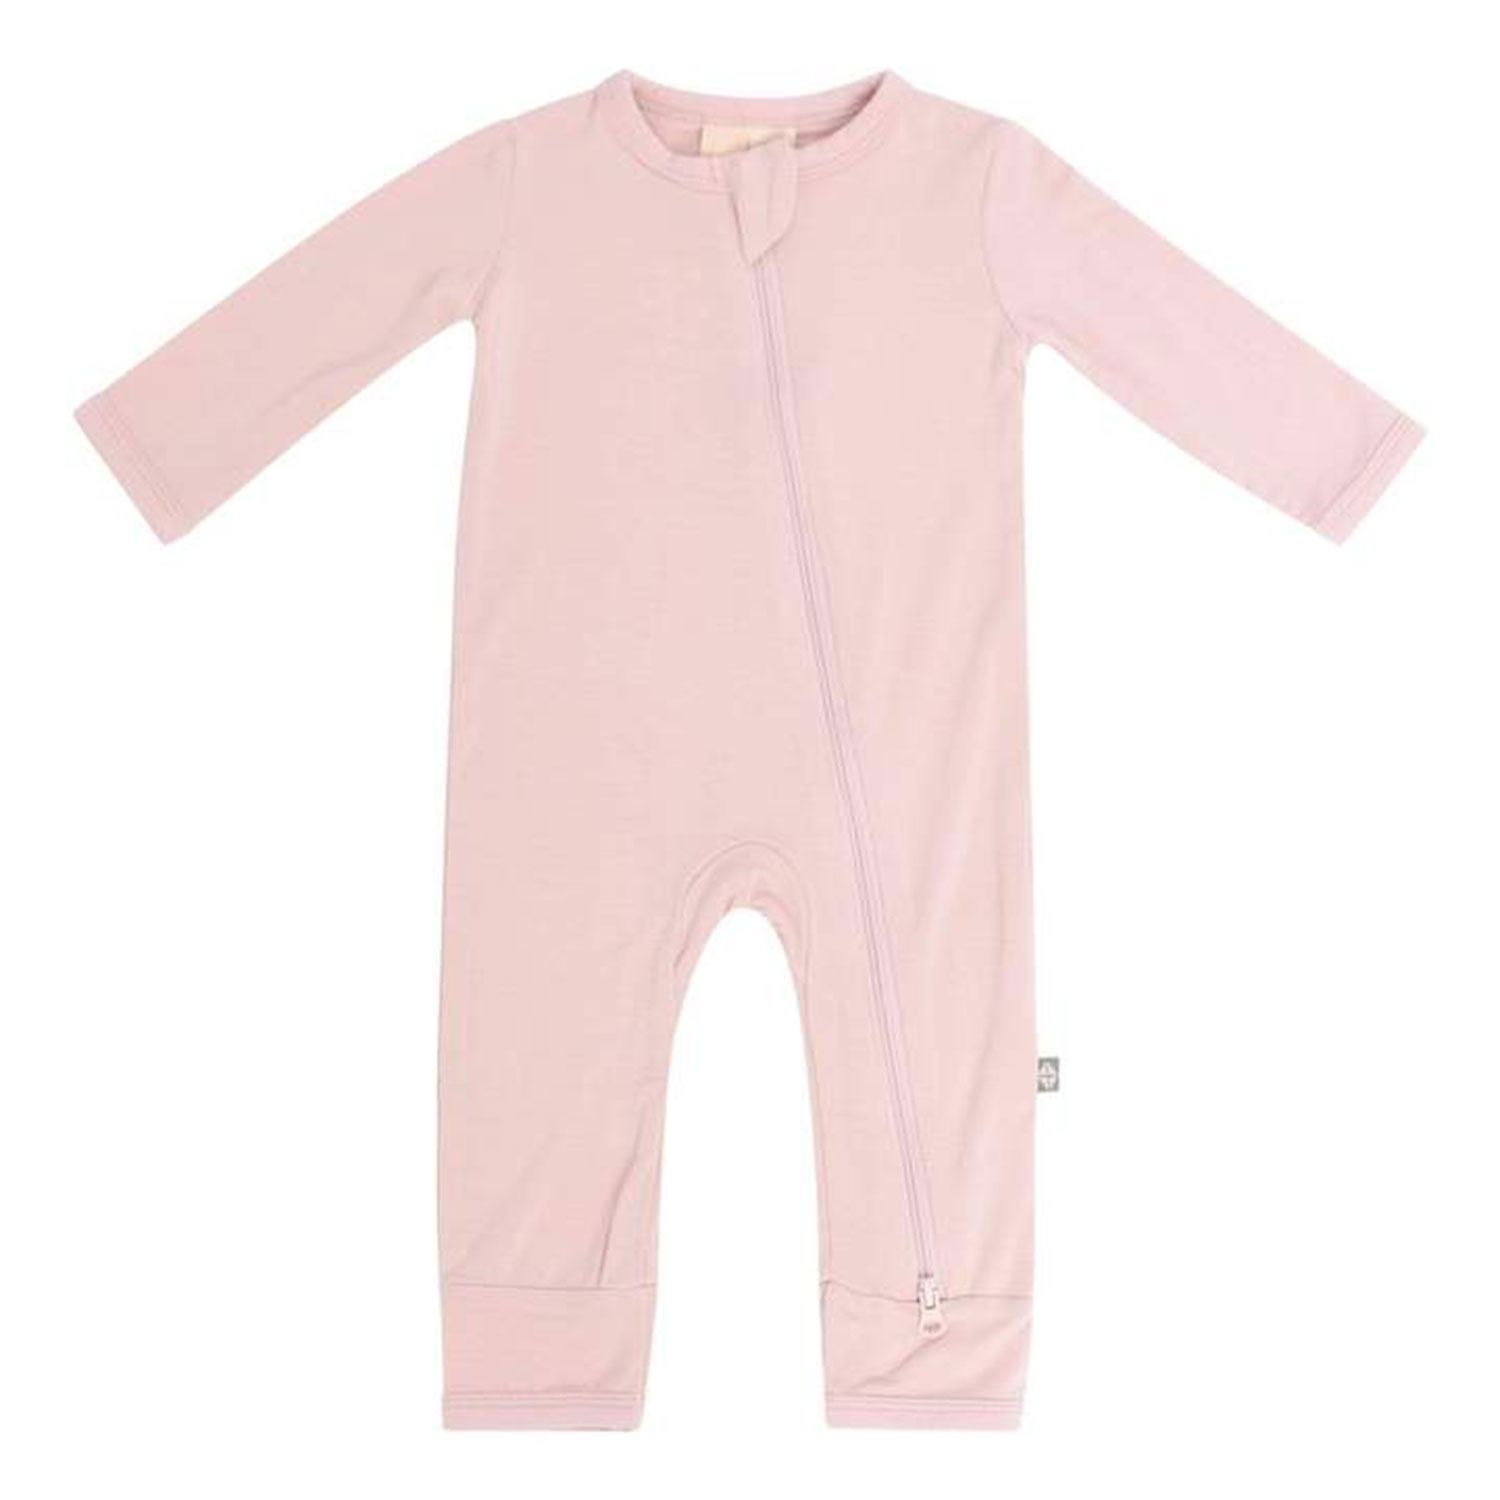 kyte baby clothing and accessories